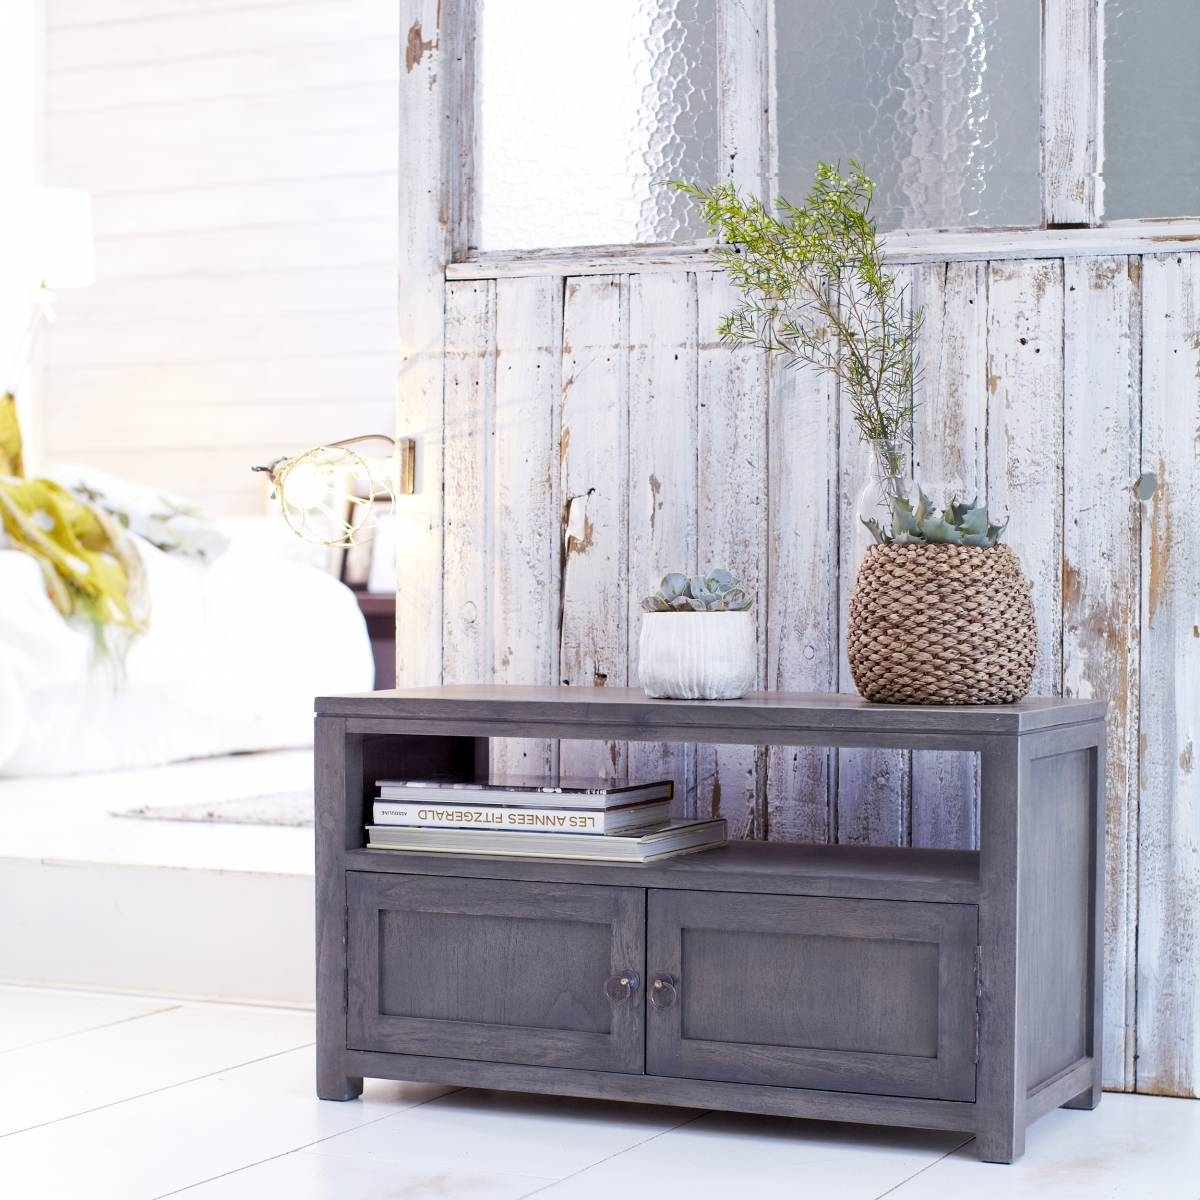 Tikamoon Solid Painted Grey Small Wood Mindi Tv Stand Tv Cabinet intended for Grey Wood Tv Stands (Image 10 of 15)